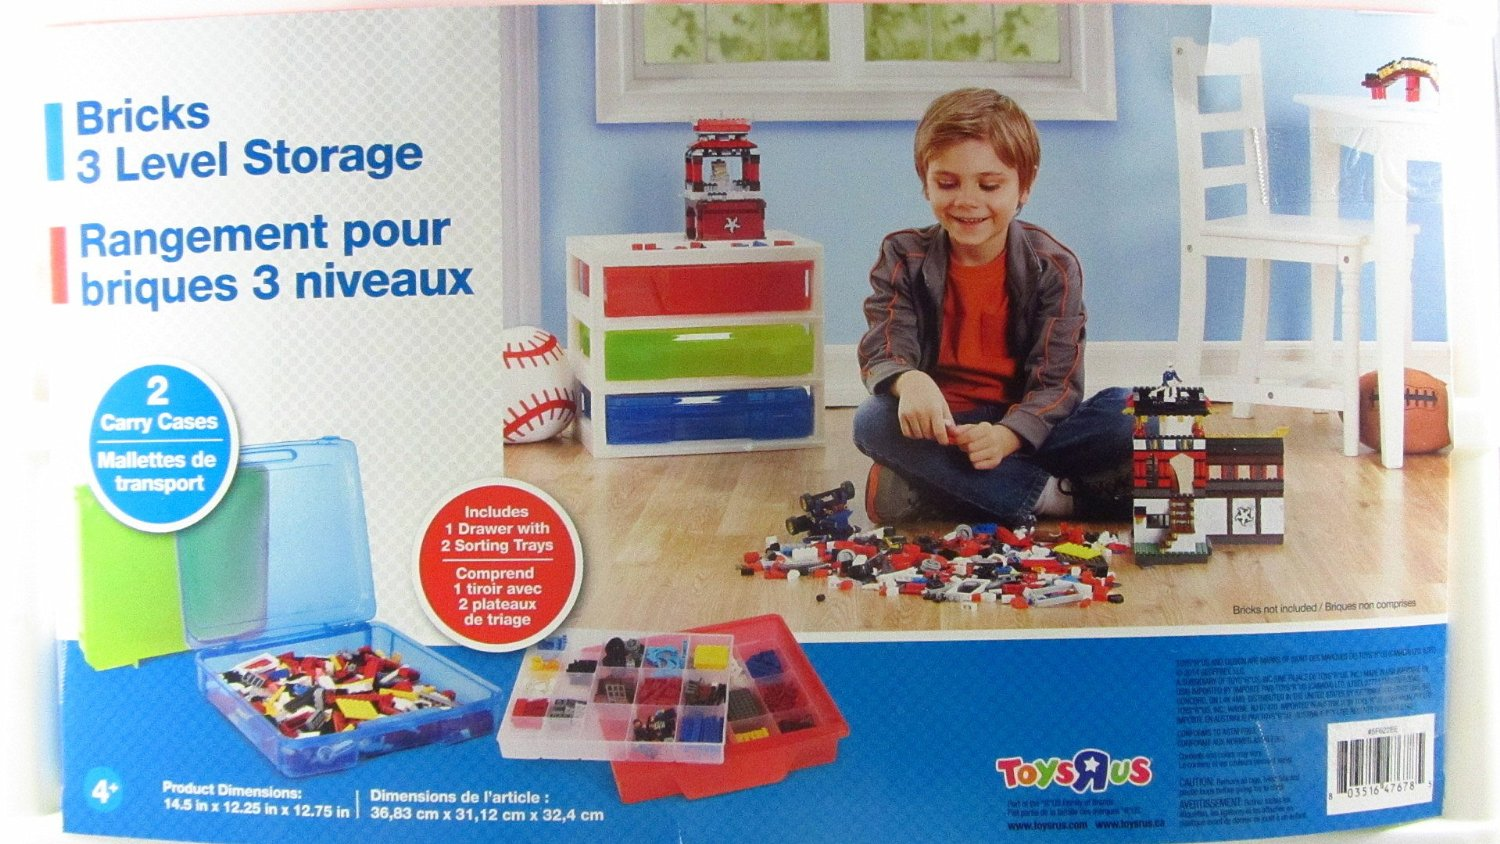 Check Out Information On The Bricks Lego Workstation And Storage, Including  Links To Instructional Videos, Product And Customer Reviews U0026 How And Where  To ...